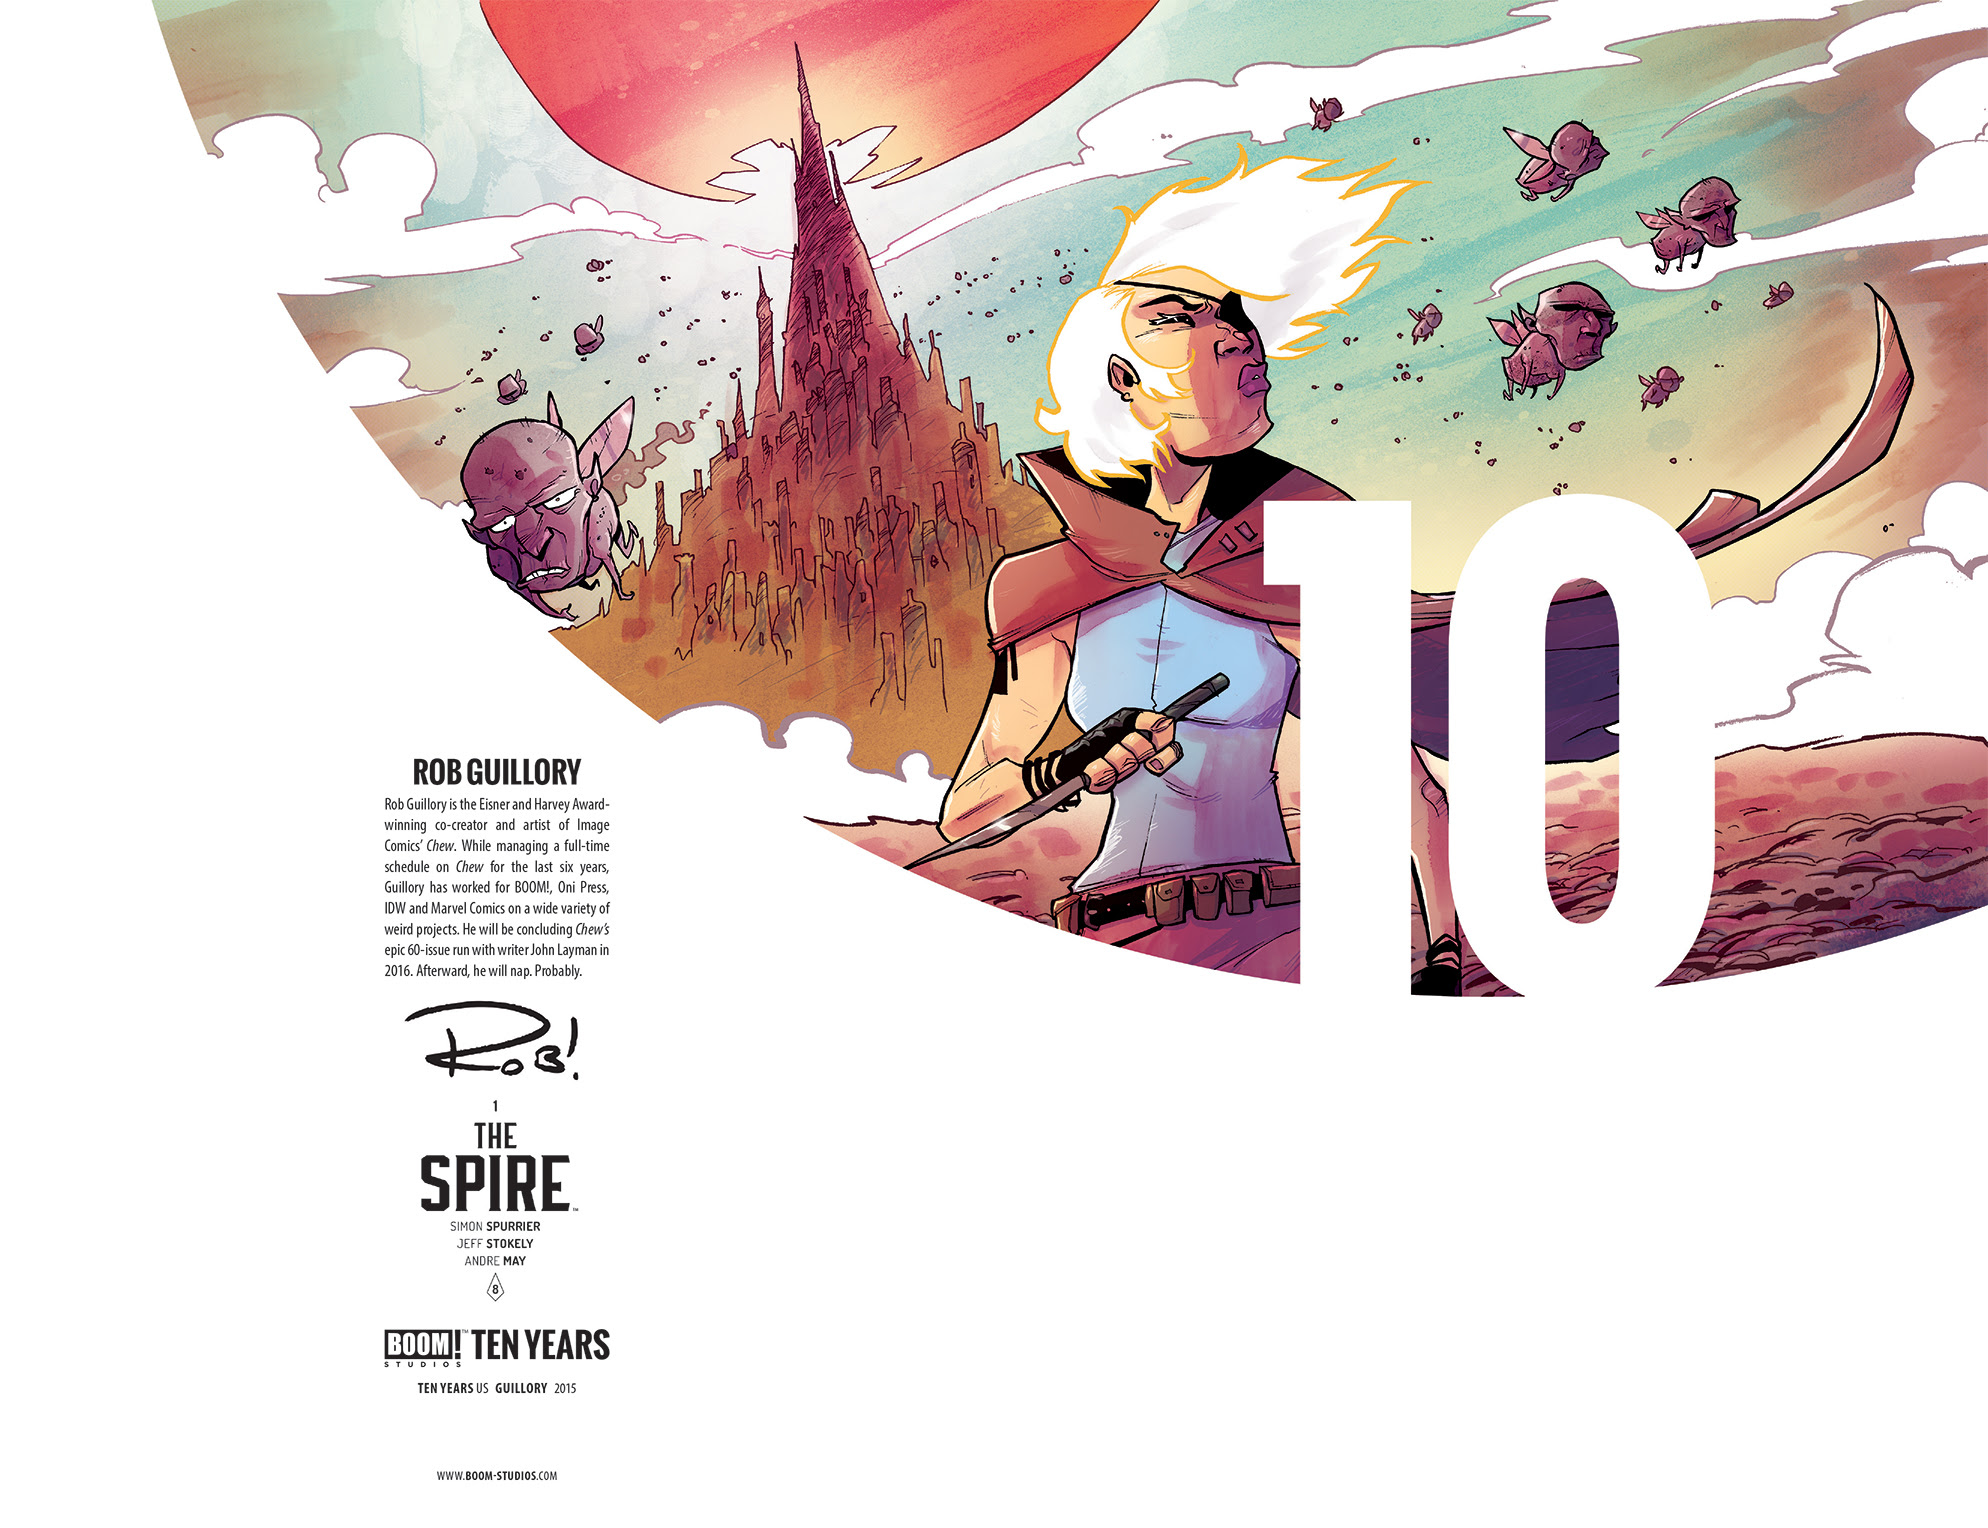 The Spire #1 10 Years Cover by Rob Guillory (full wraparound image shown)